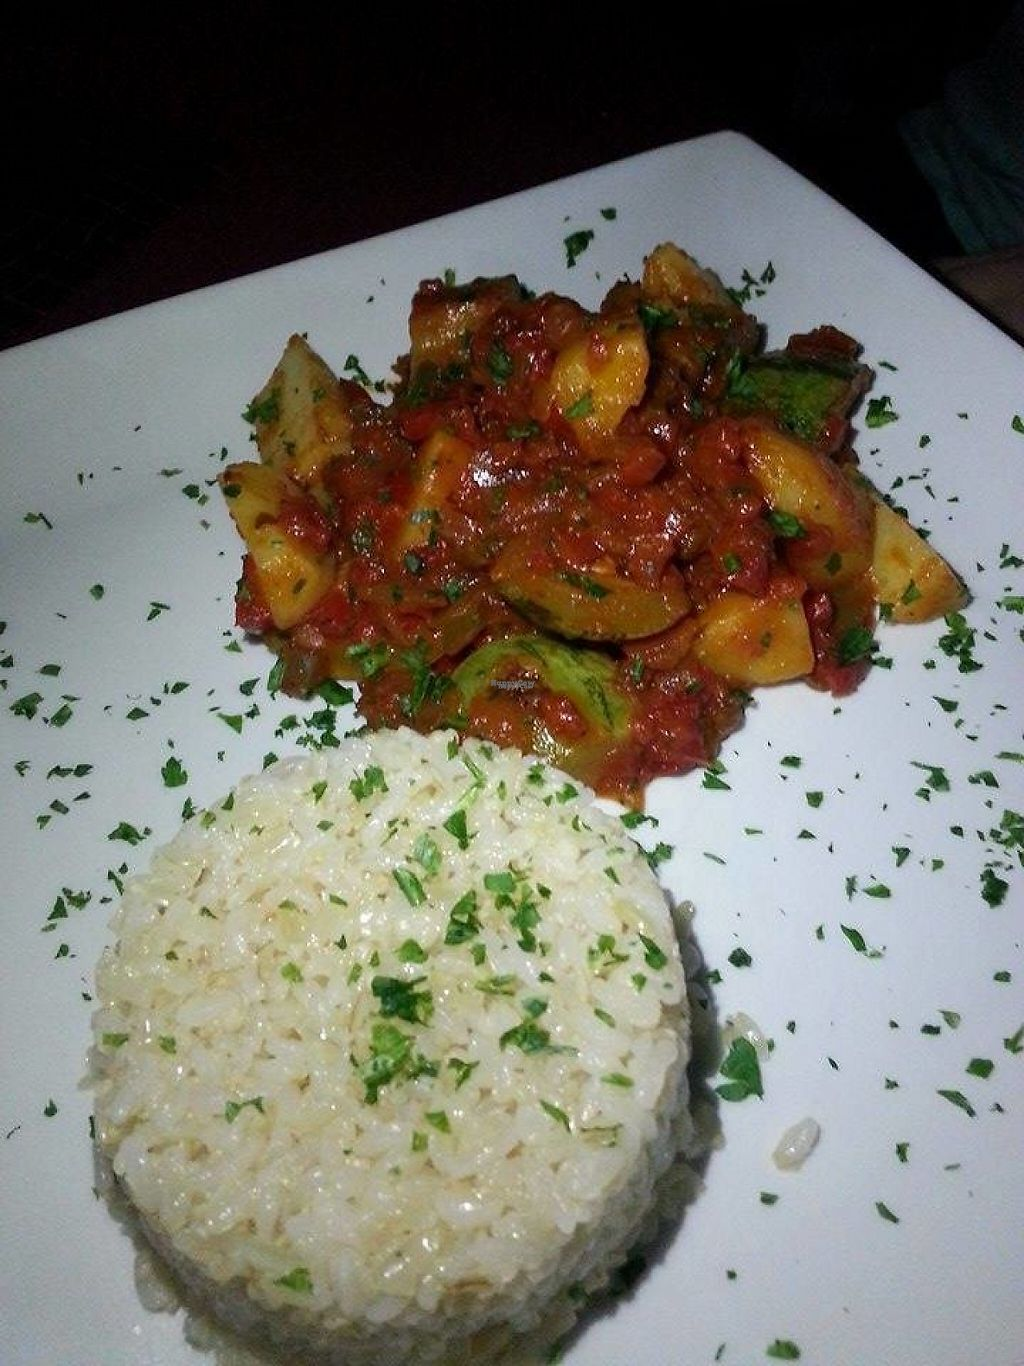 "Photo of Elefante Blanco  by <a href=""/members/profile/community"">community</a> <br/>veggies in tomato sauce  <br/> December 15, 2016  - <a href='/contact/abuse/image/27311/201336'>Report</a>"